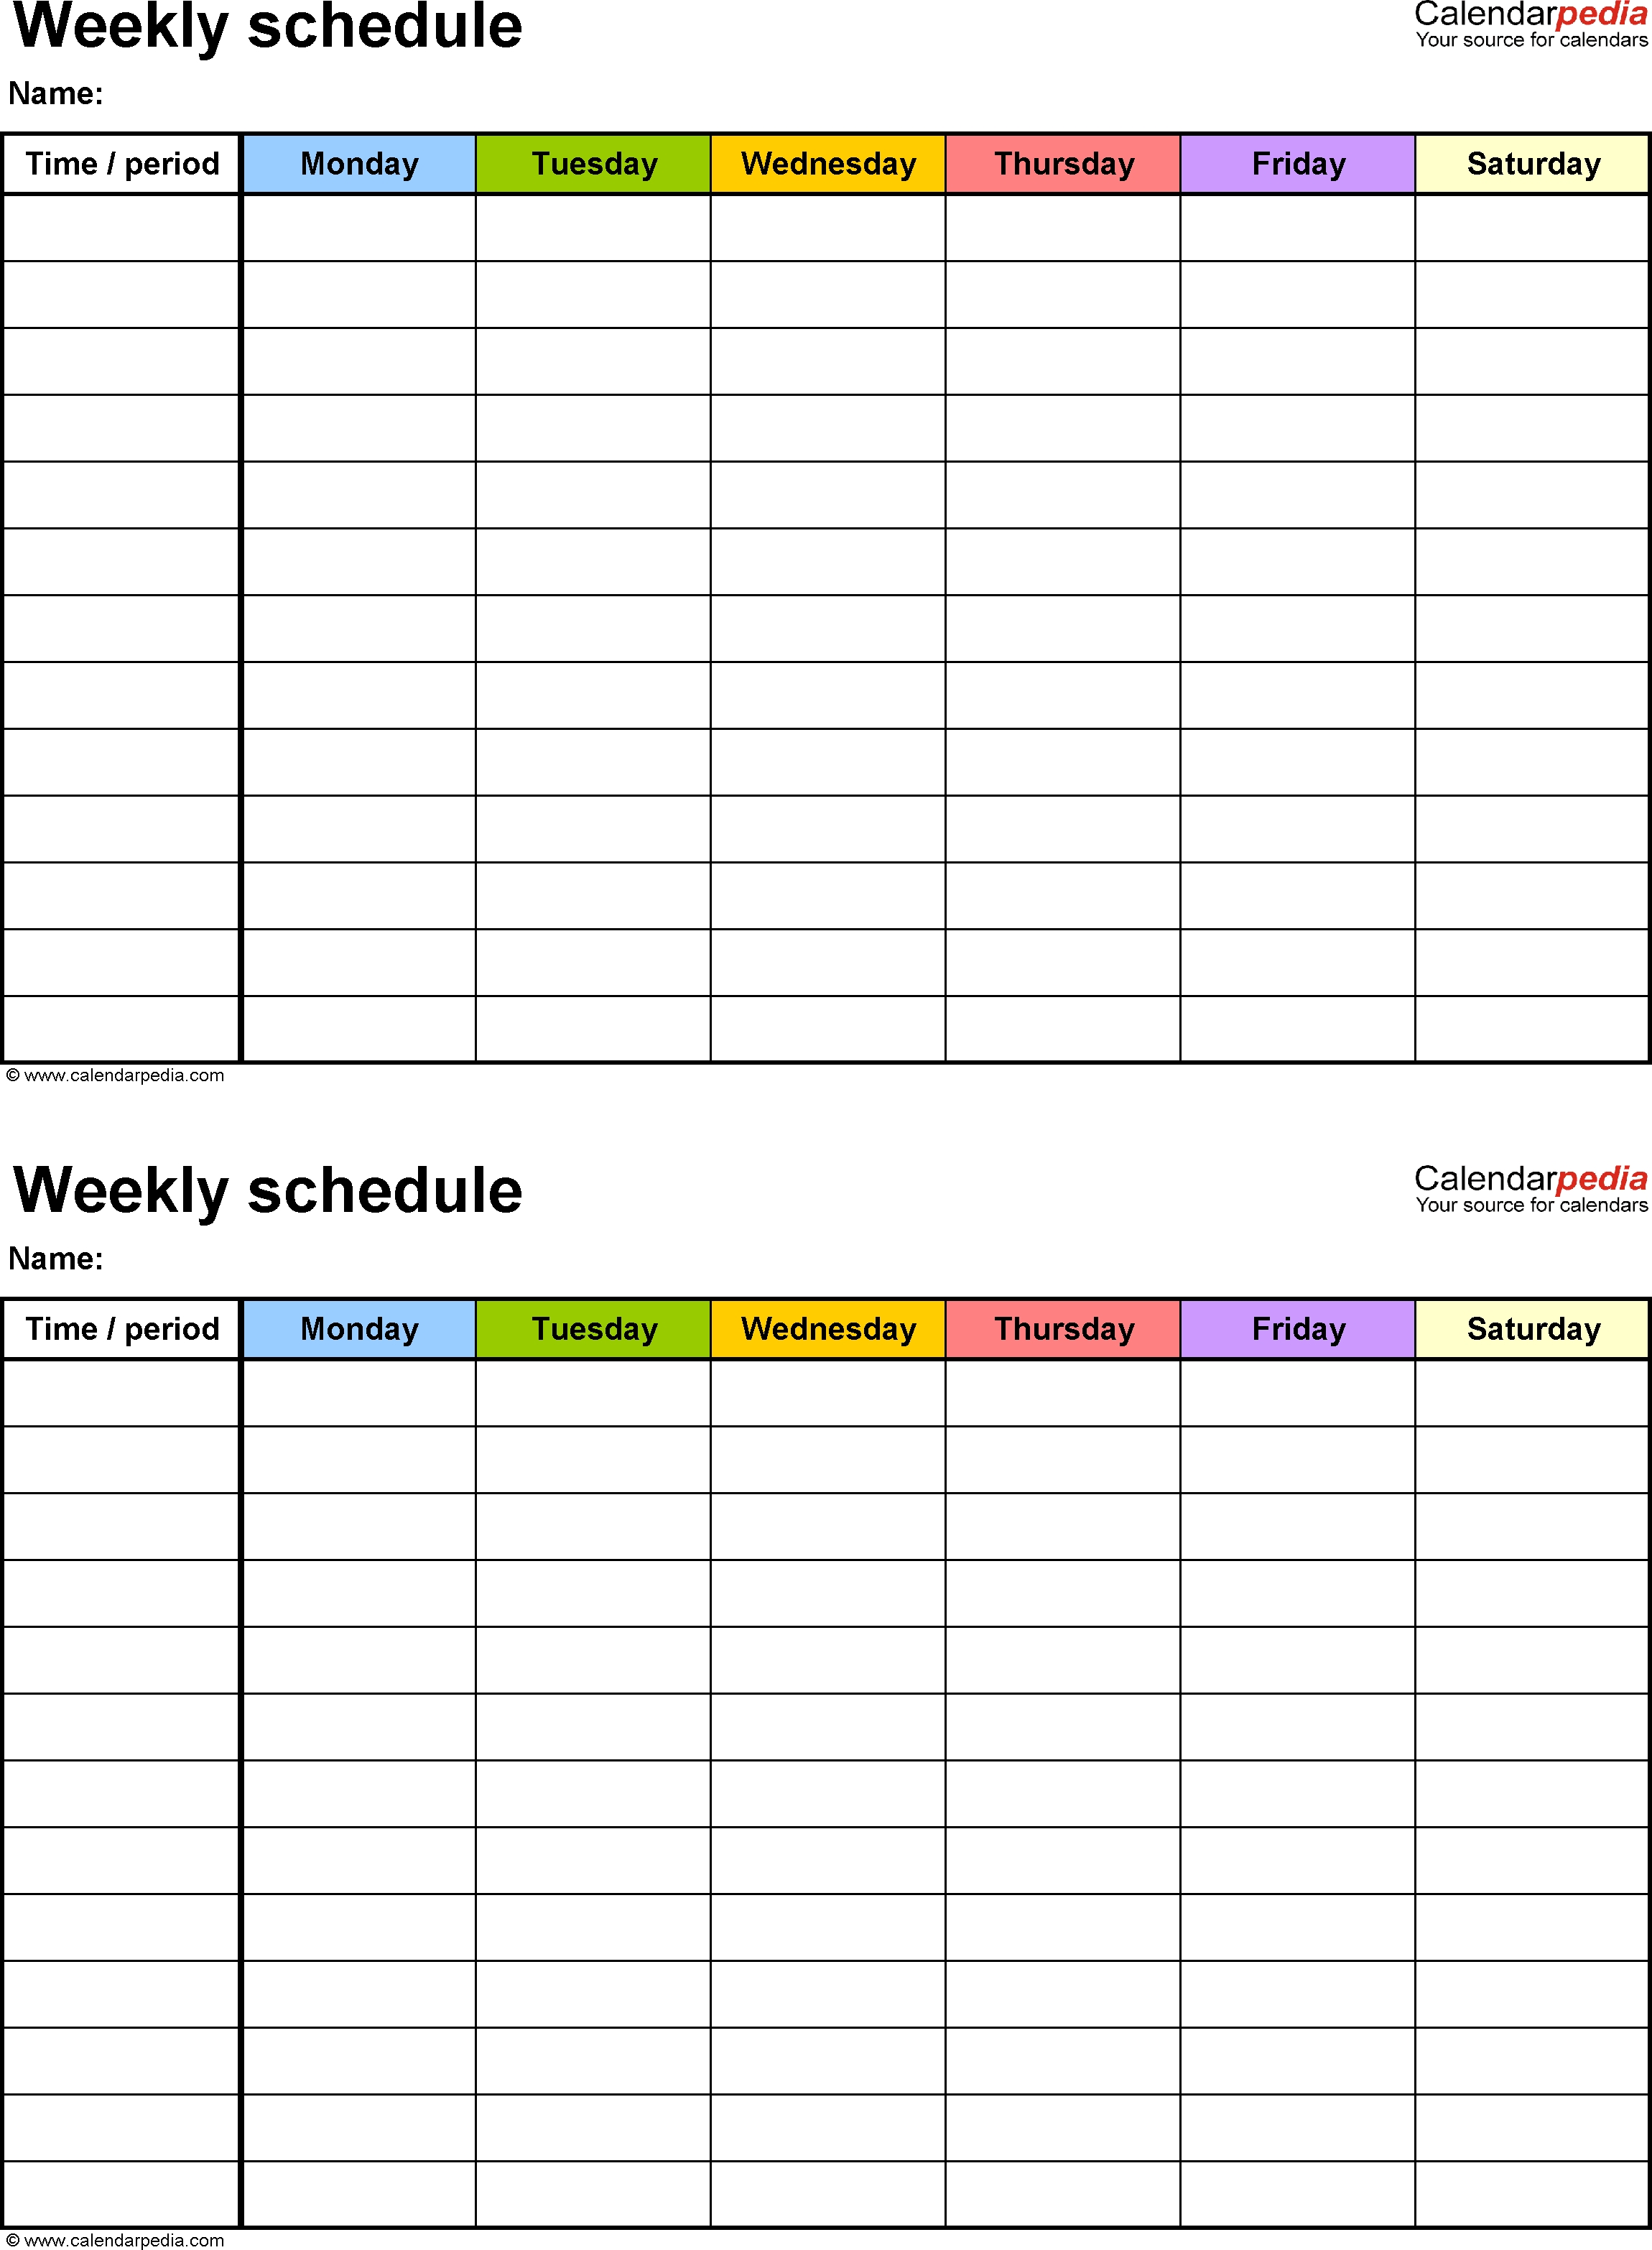 Free Weekly Schedule Templates For Excel - 18 Templates for Free Printable Template For Day Of The Week Schedule